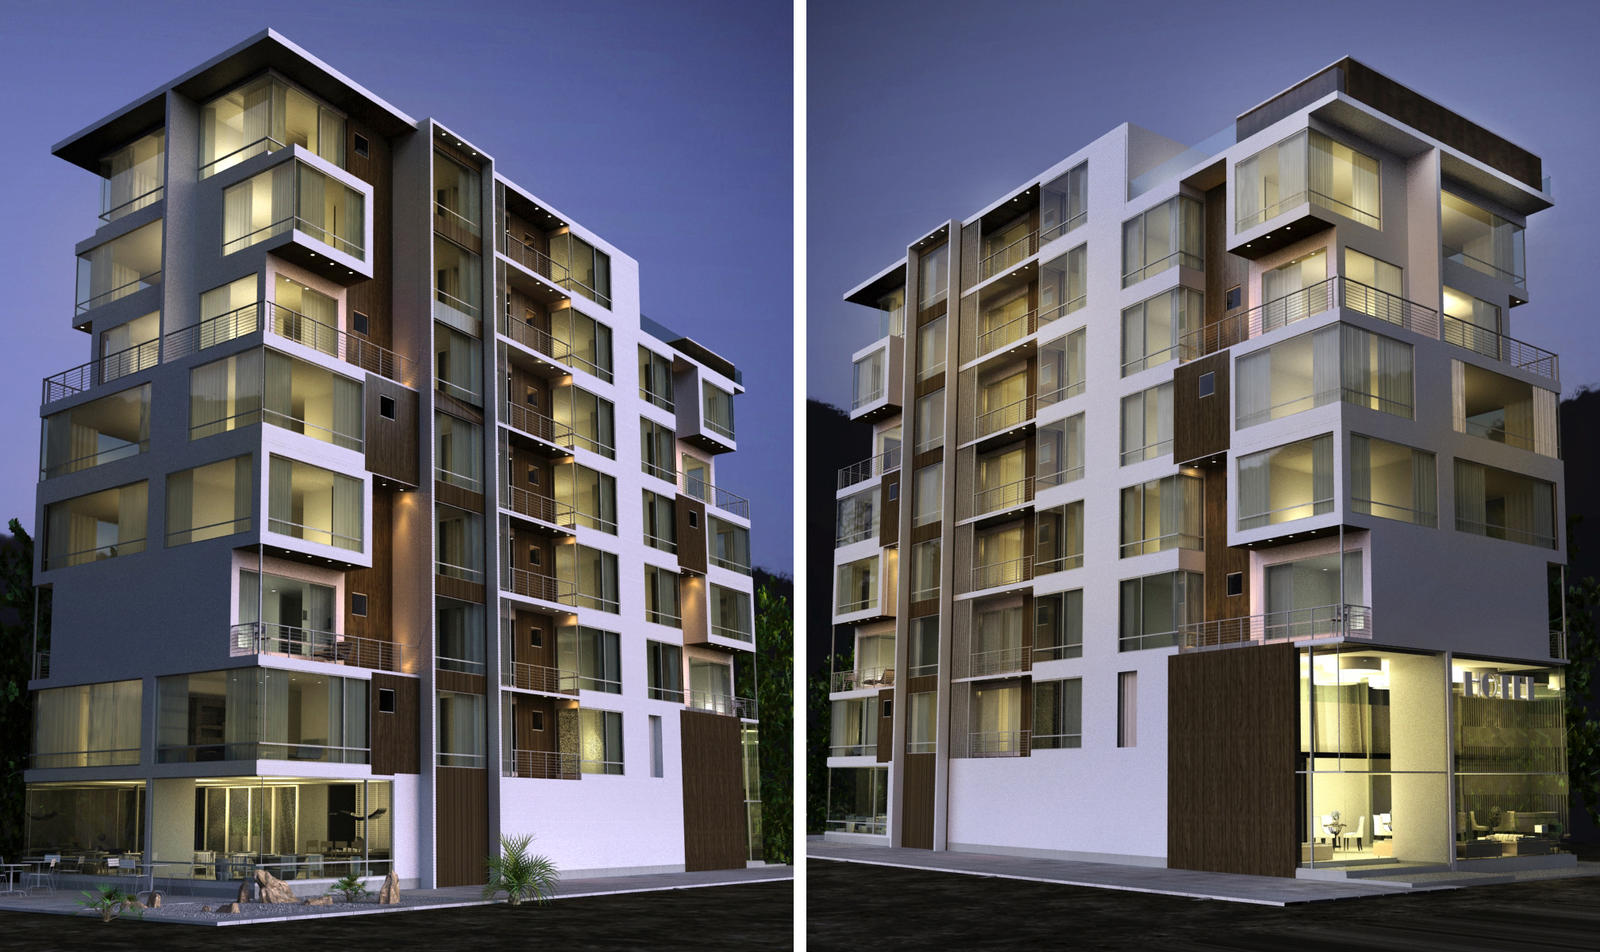 Apartment building by kasrawy on deviantart for Apartment complex designs